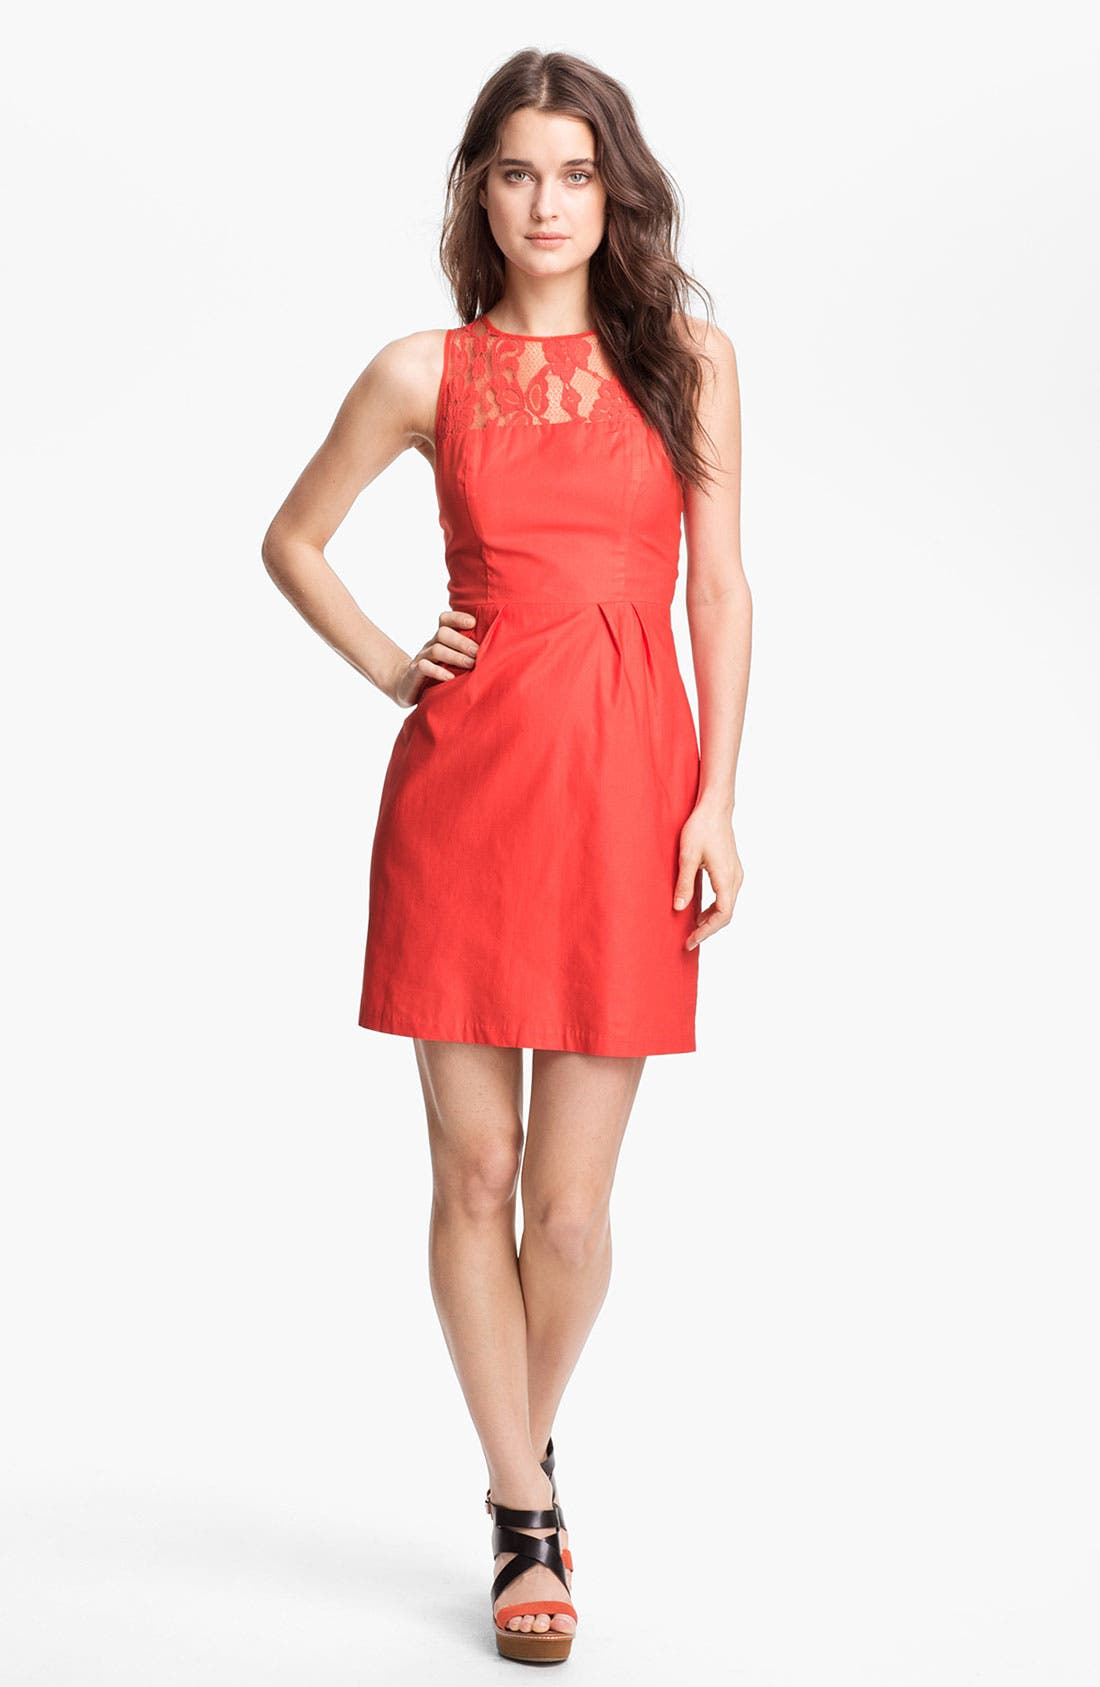 Alternate Image 1 Selected - BB Dakota 'Mandy' Lace Yoke Cotton Sheath Dress